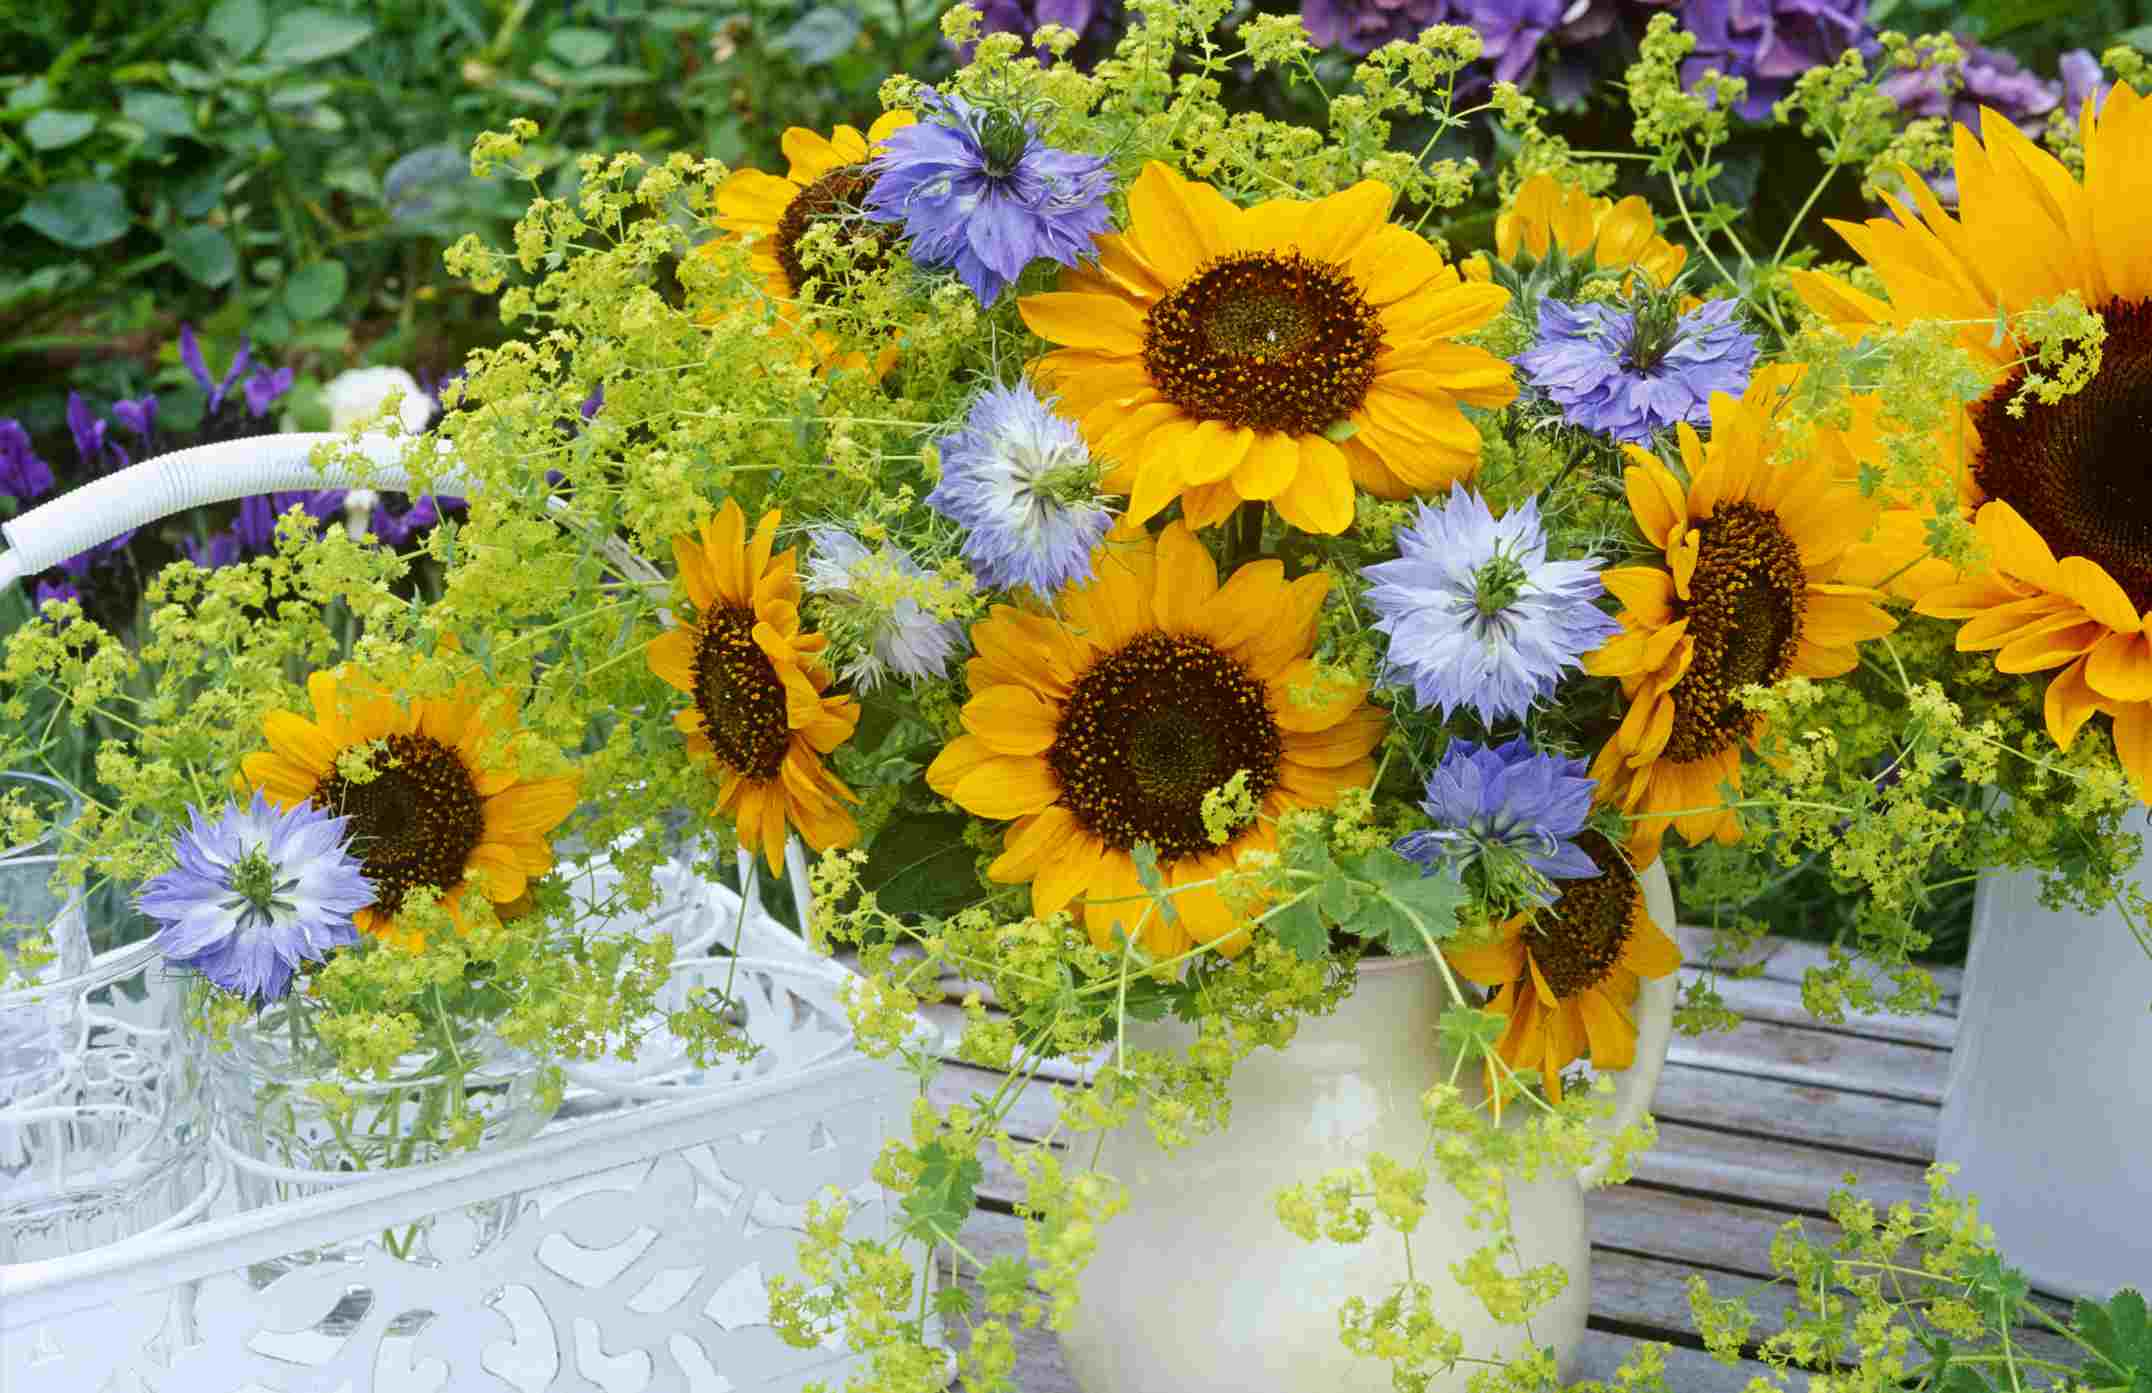 Nigella flowers potted with sunflowers